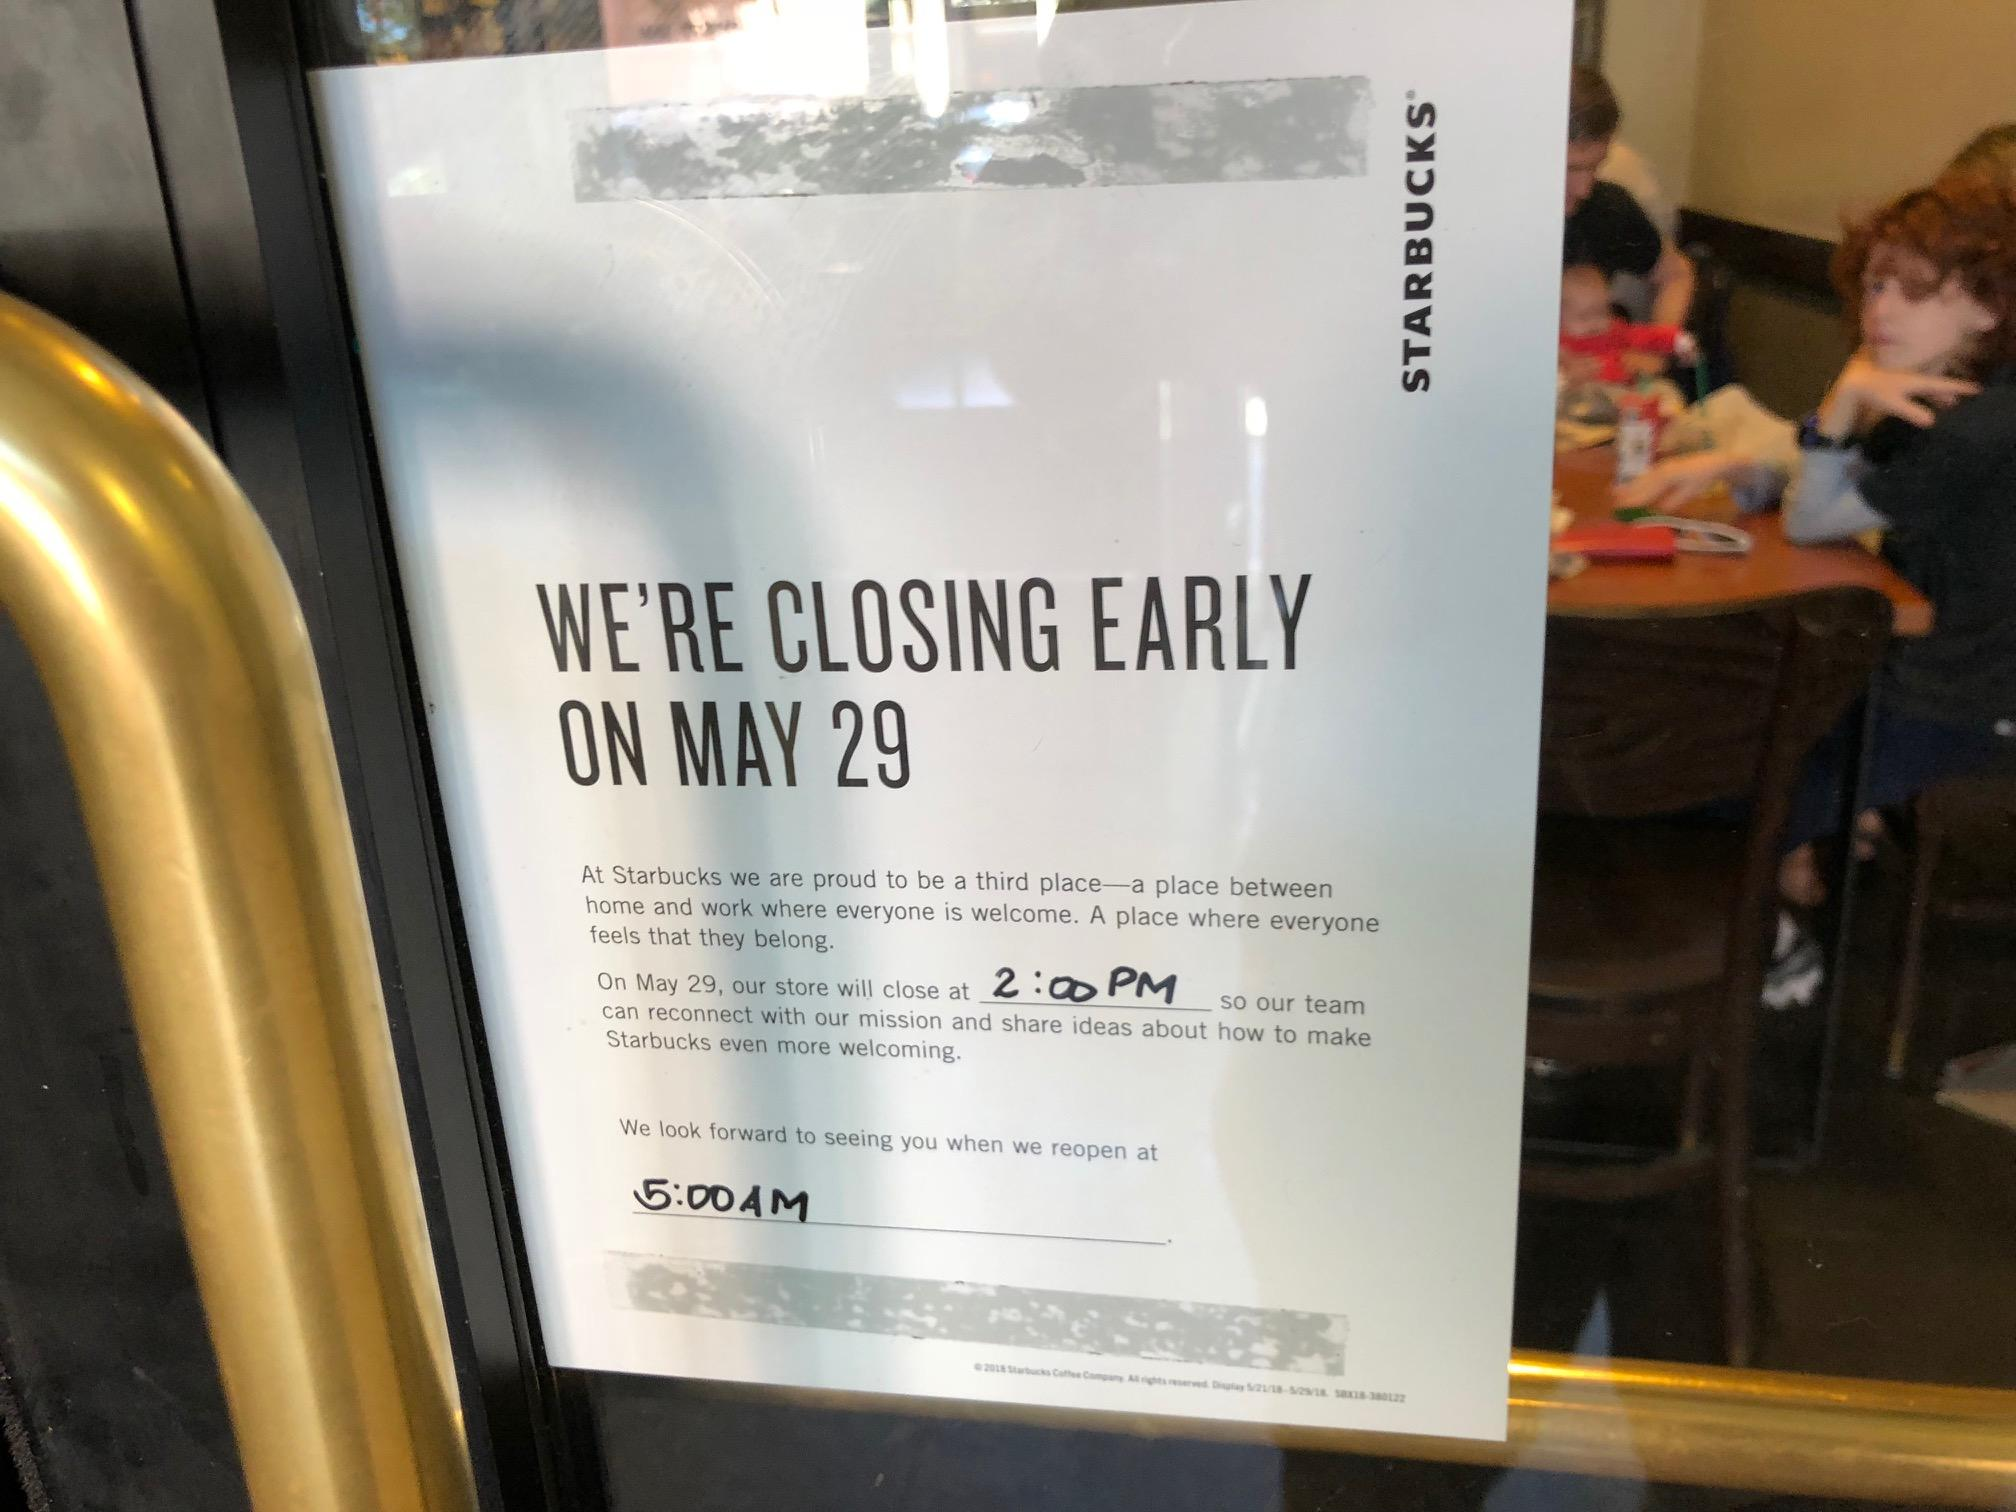 Starbucks Closing Early Tuesday - What It Means - Starbucks ...